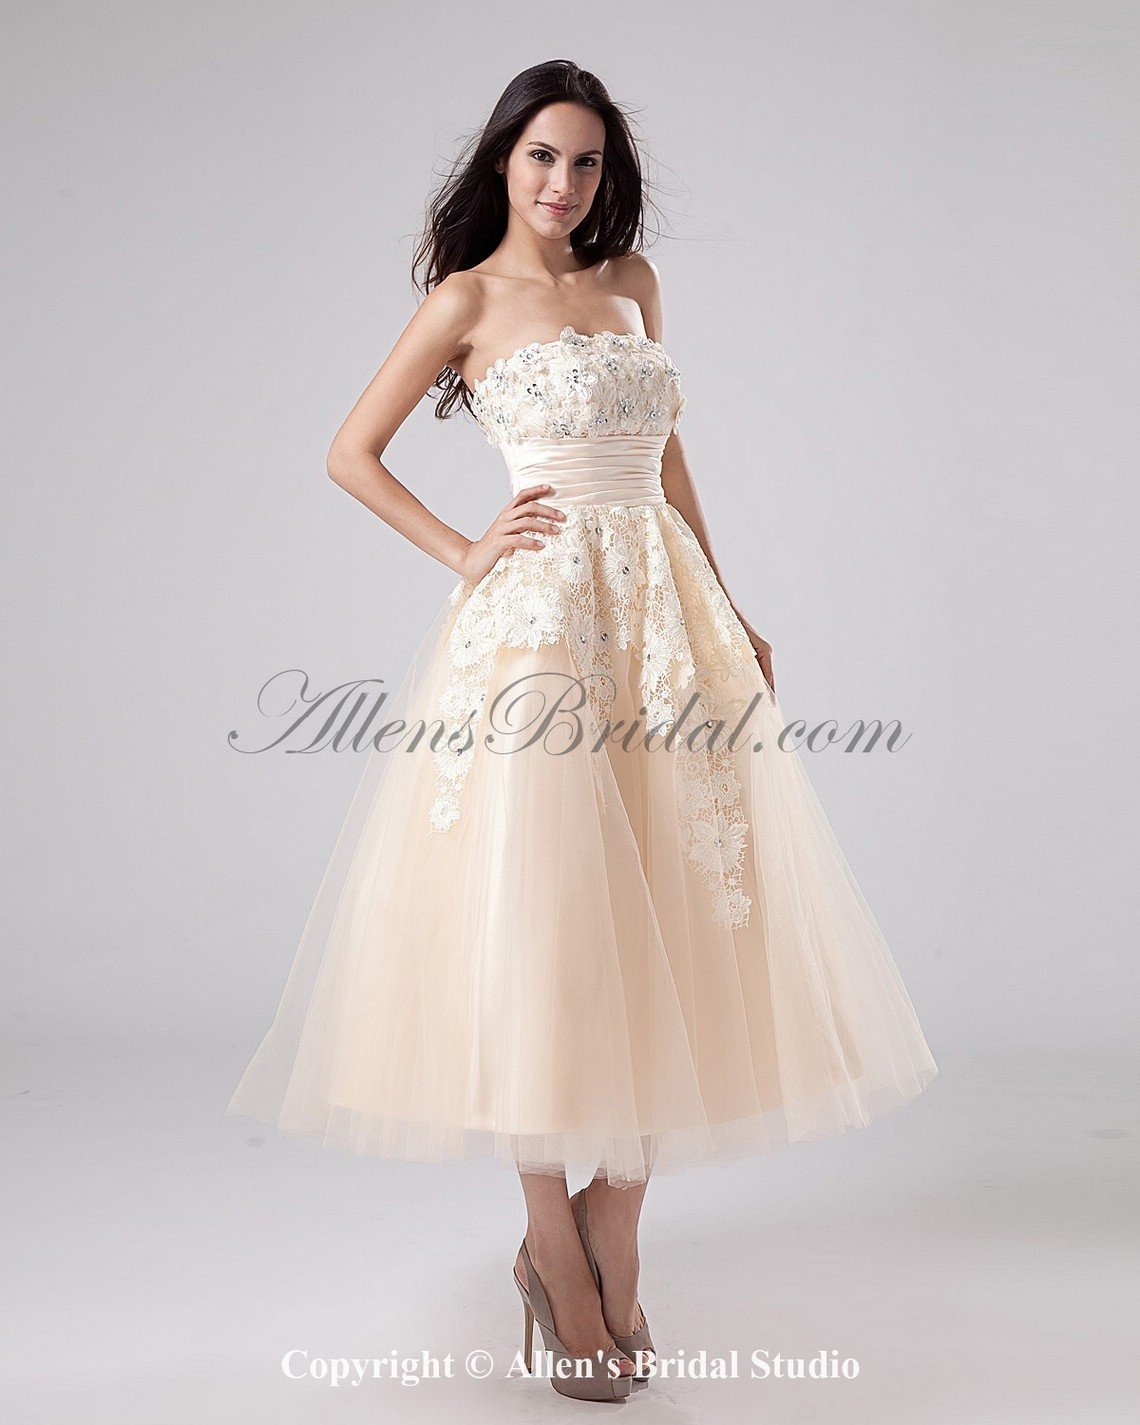 /1785-14112/satin-and-net-strapless-tea-length-ball-gown-wedding-dress.jpg